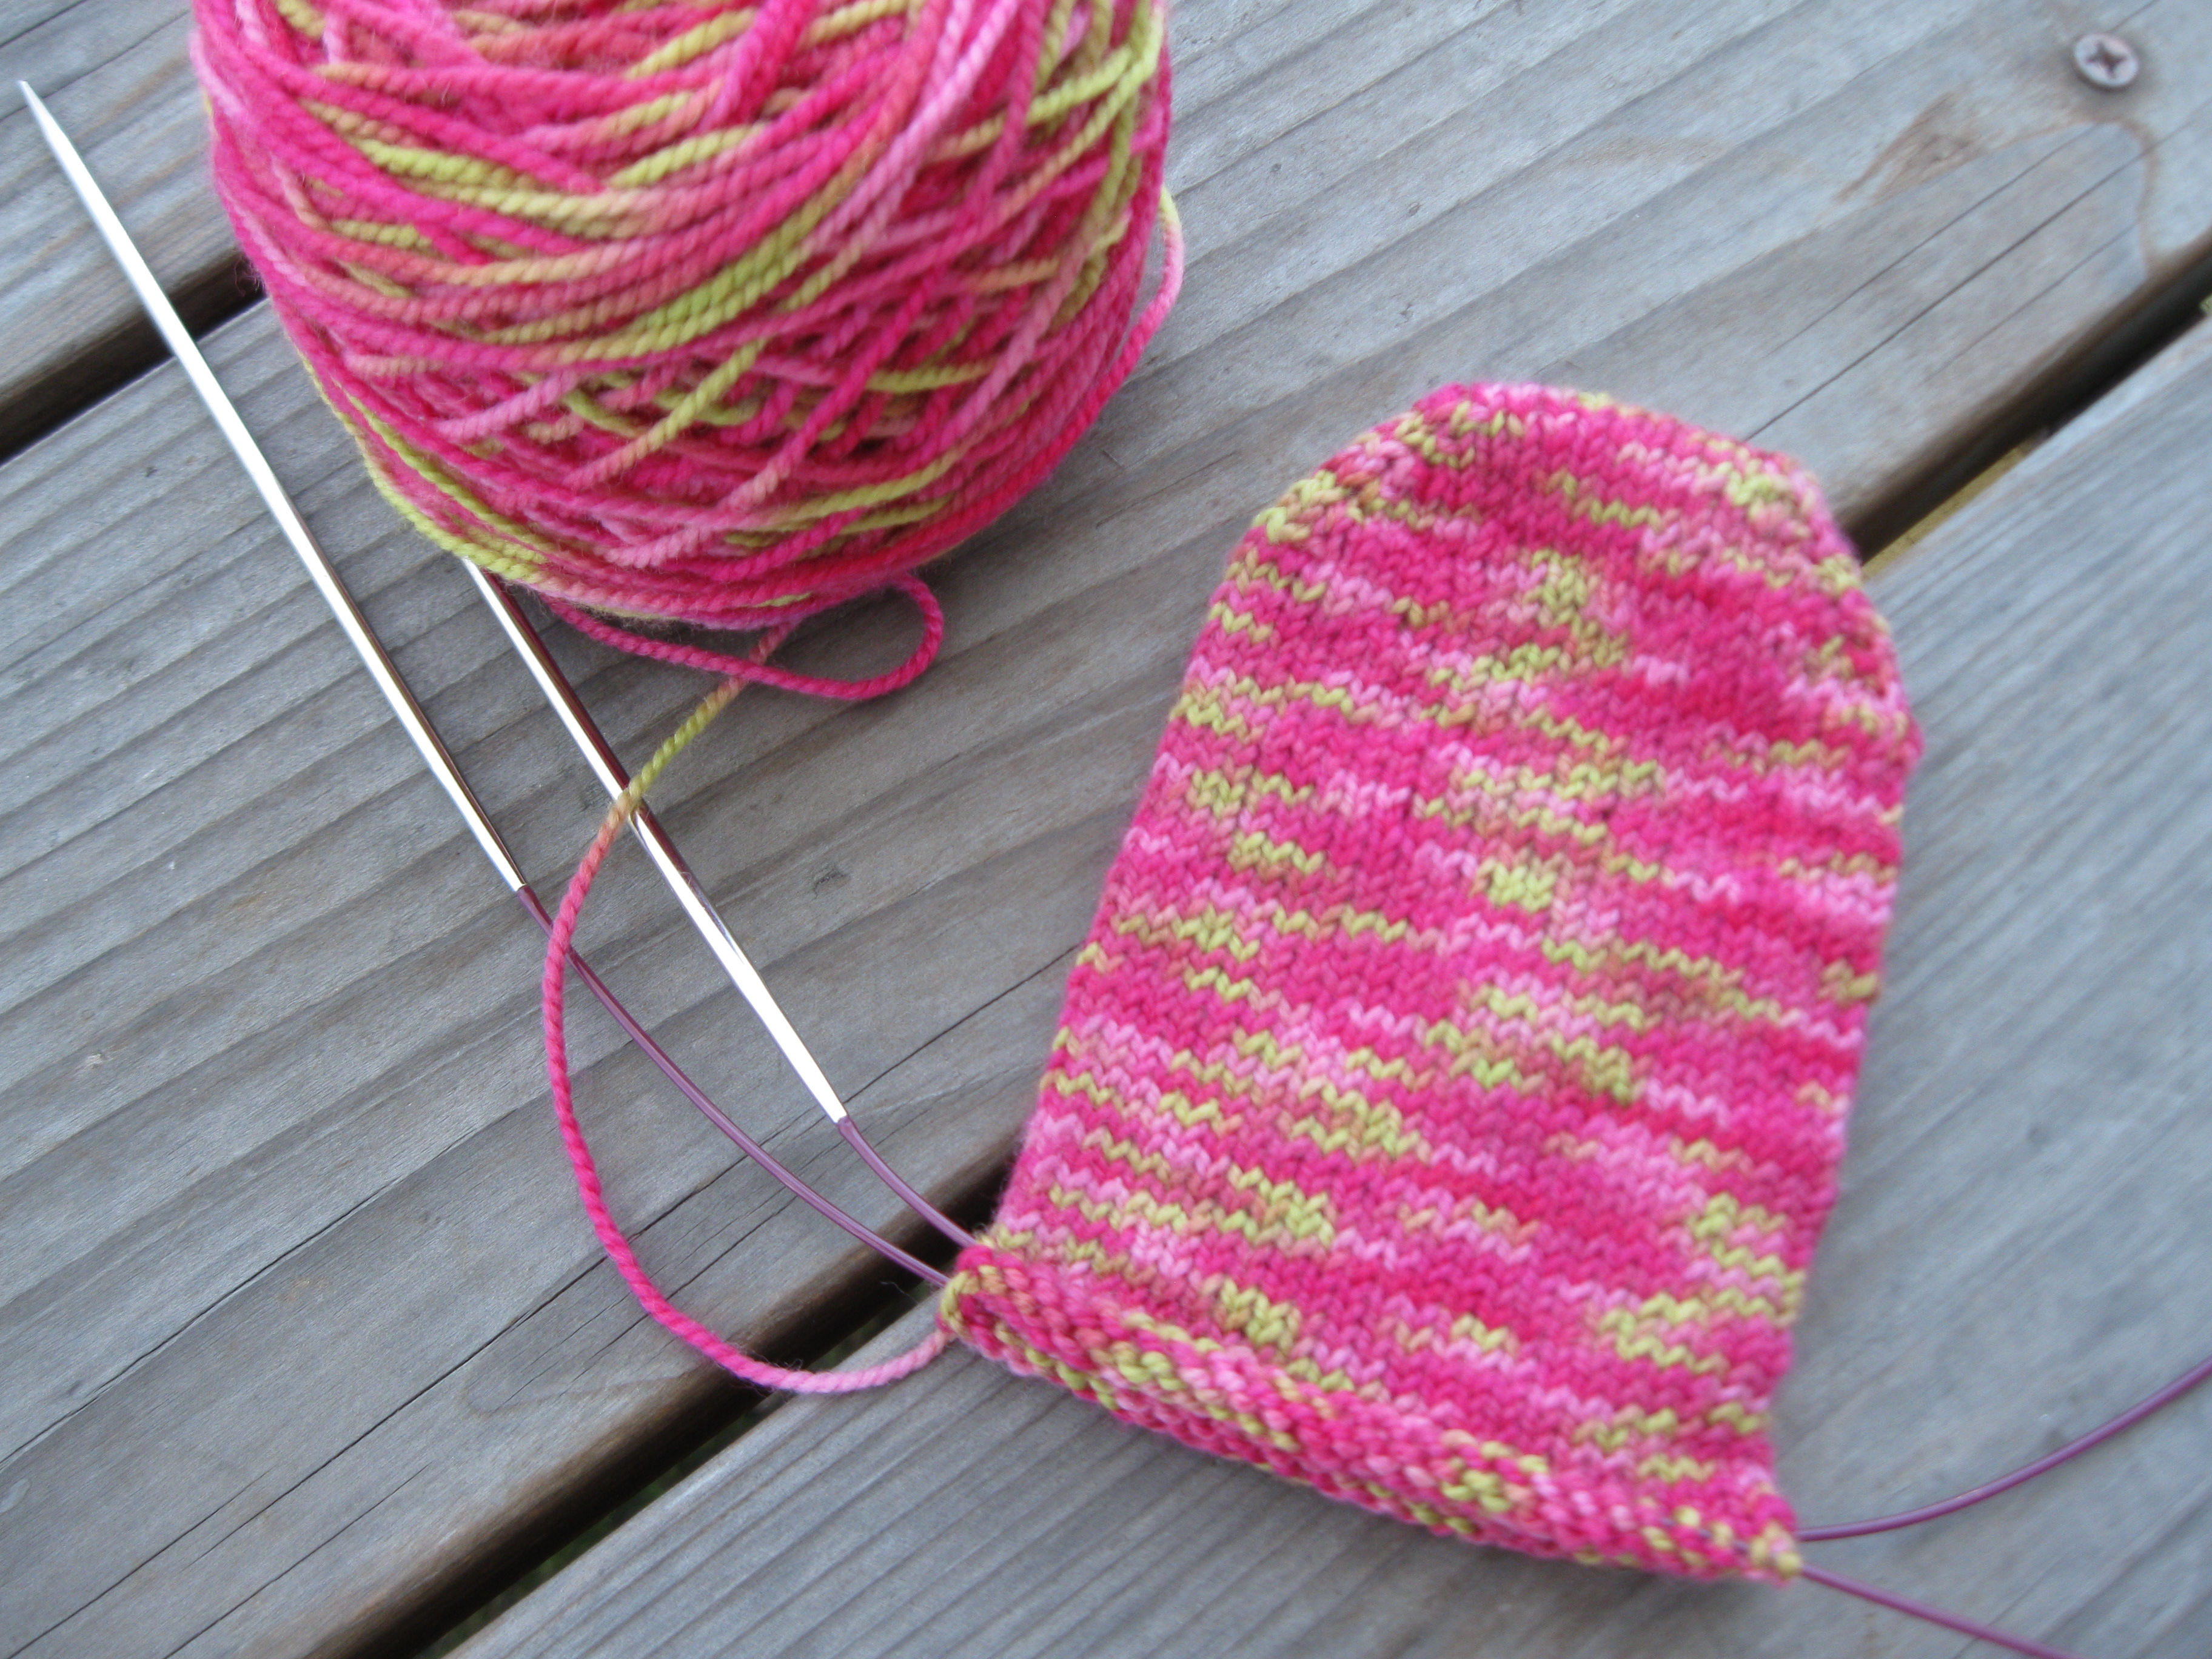 Day 287/365: My Basic Toe-Up Sock Pattern | 365 Days Handmade